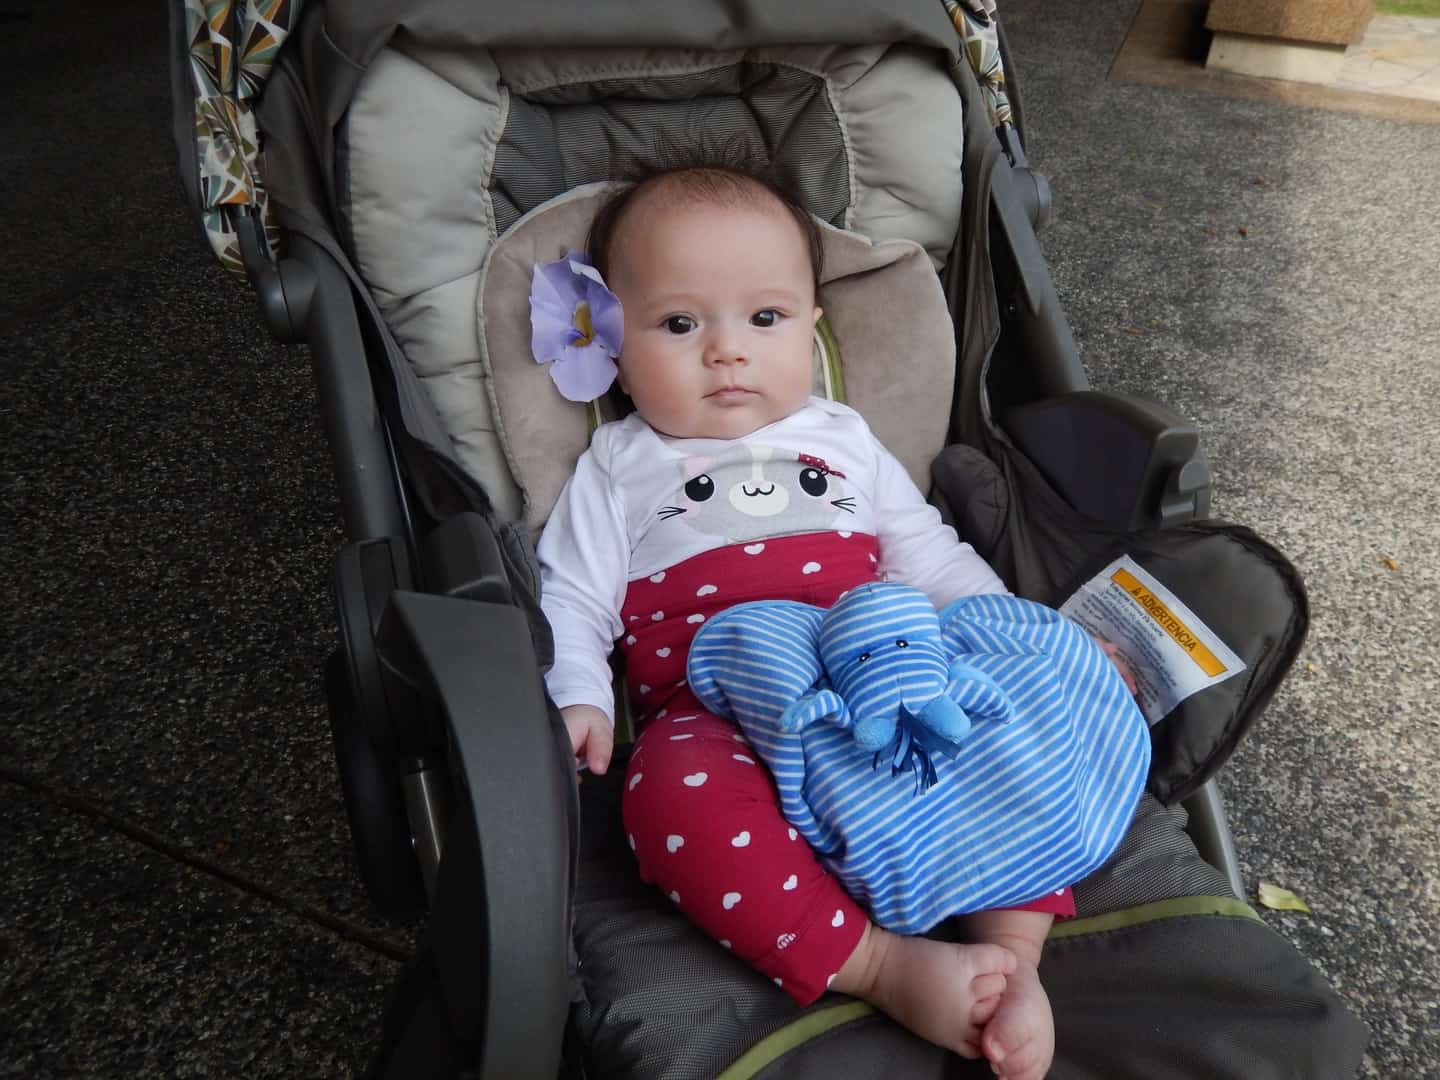 A baby in one of the best rear facing car seat options on the market today.